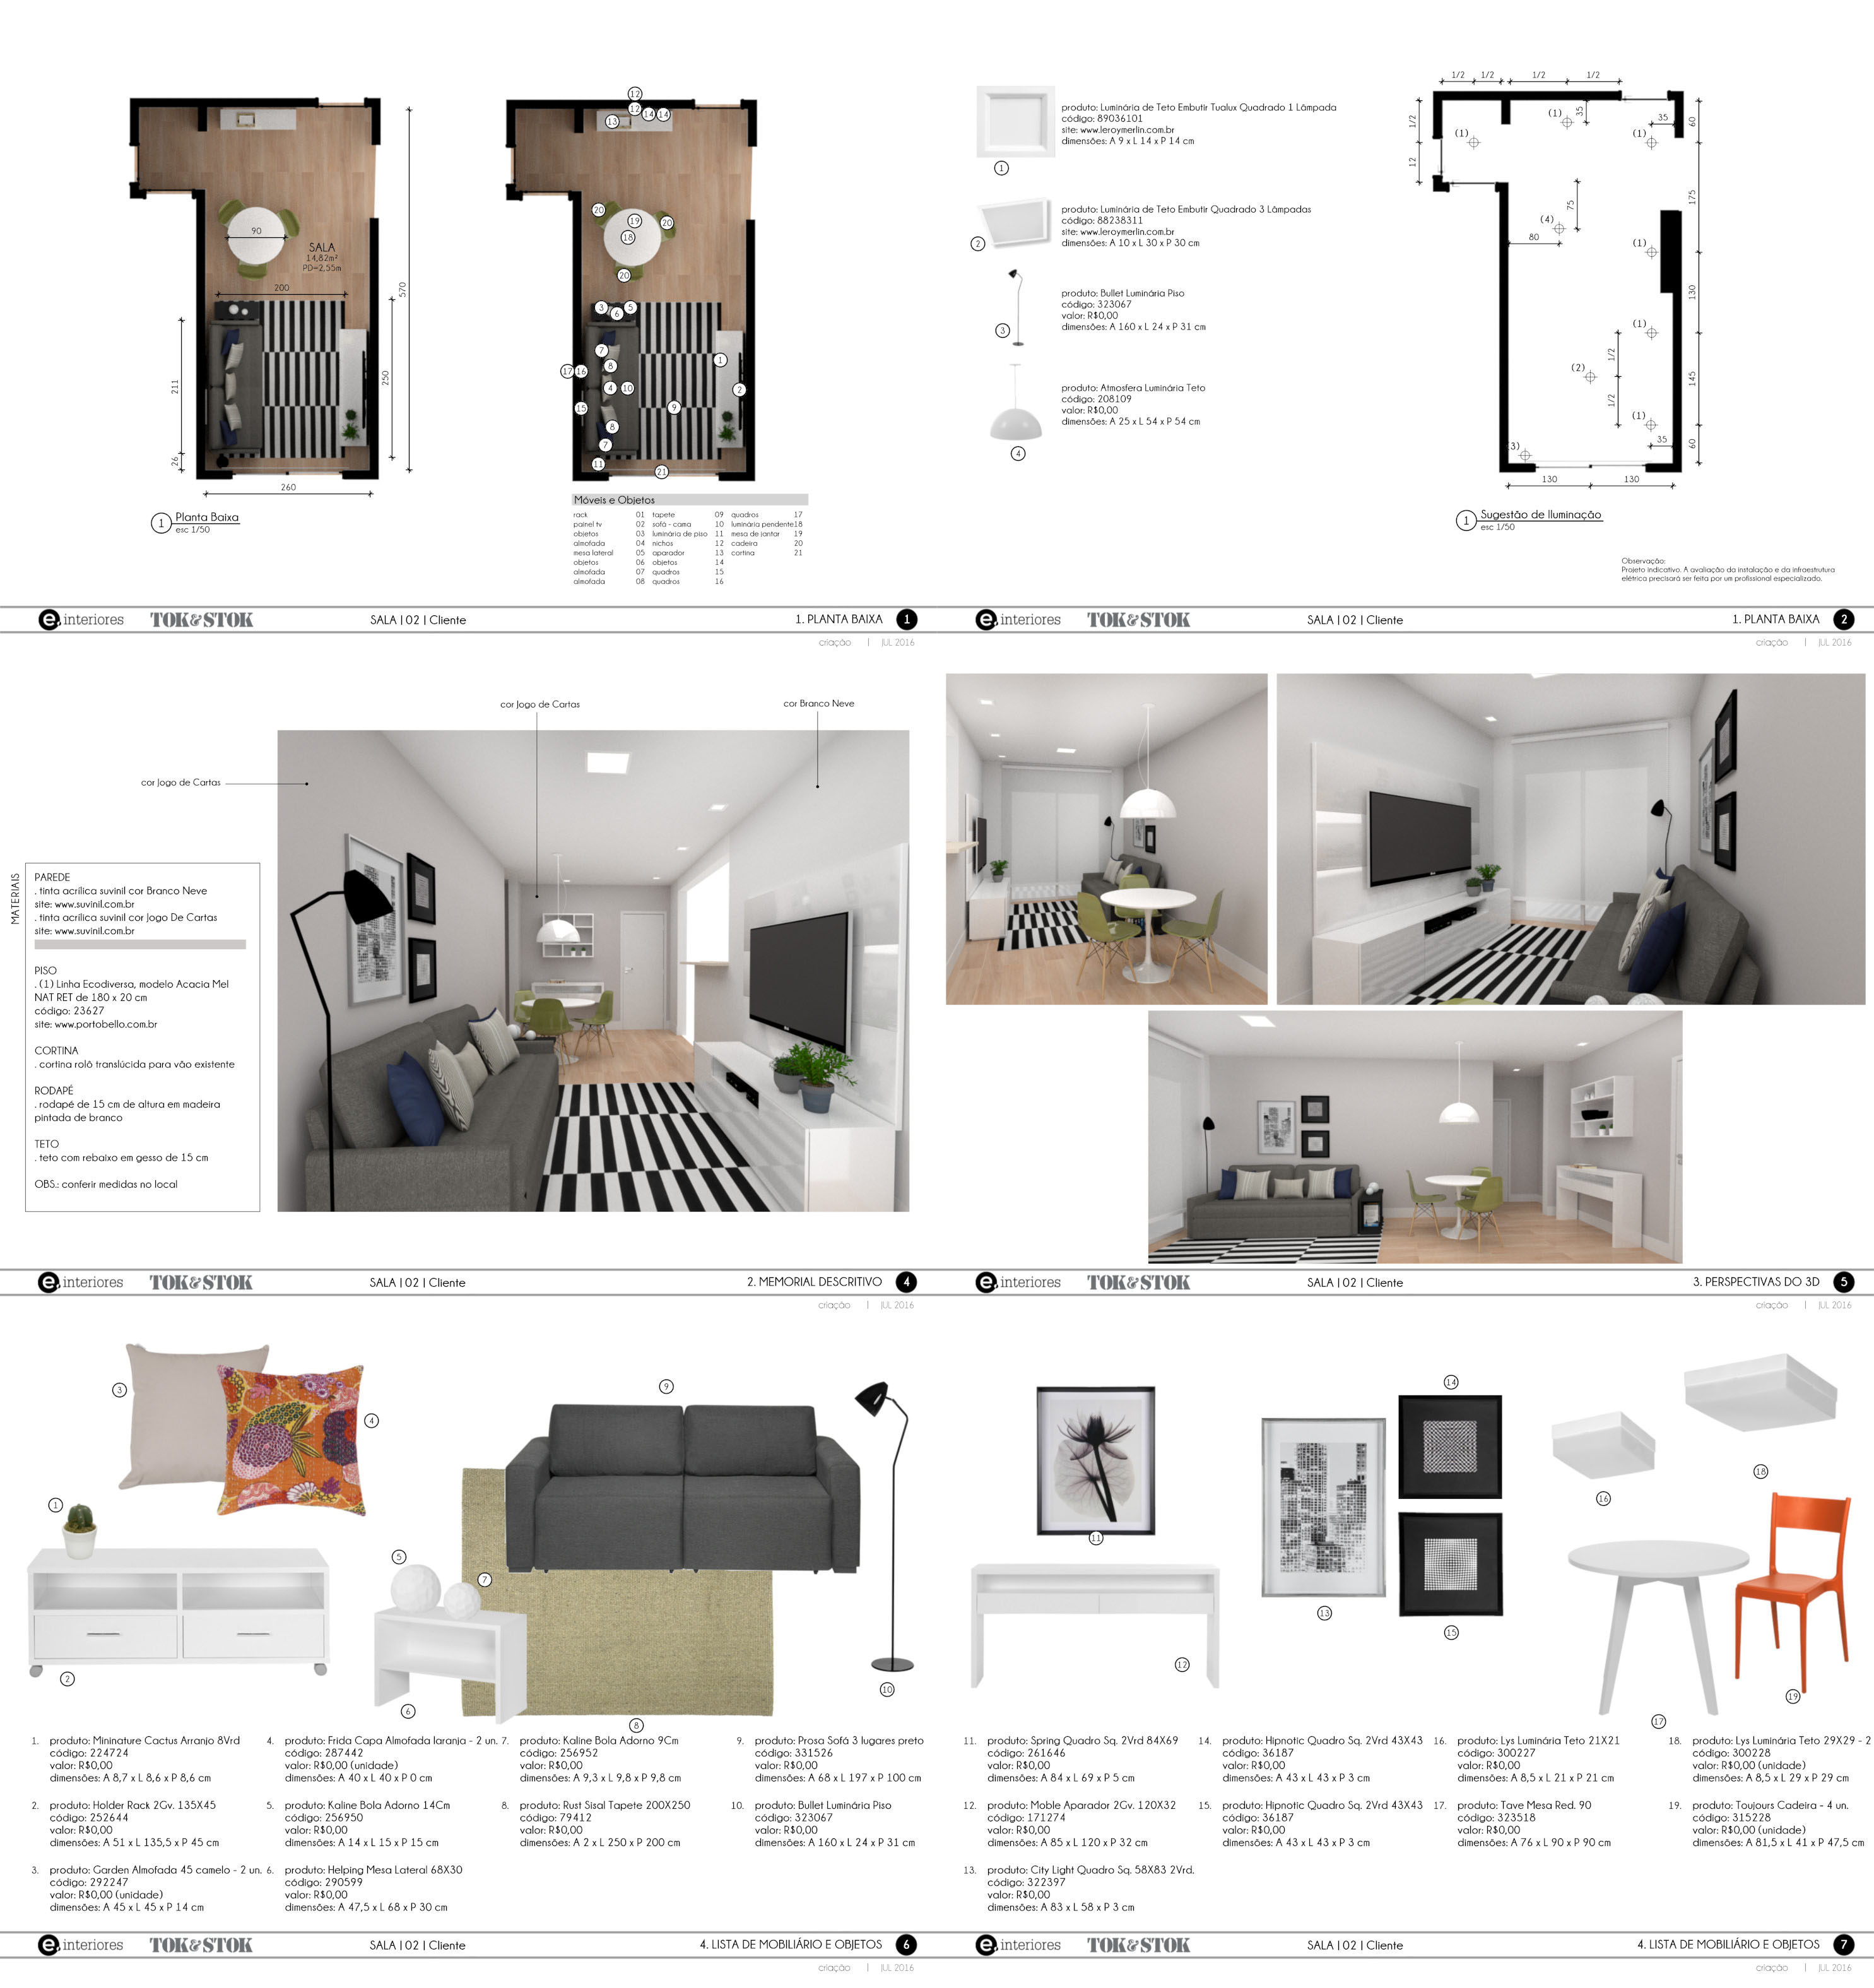 Improve Interior Design Product Sourcing With 3d Home: E-Interiores: Next-generation Interior Design With Blender